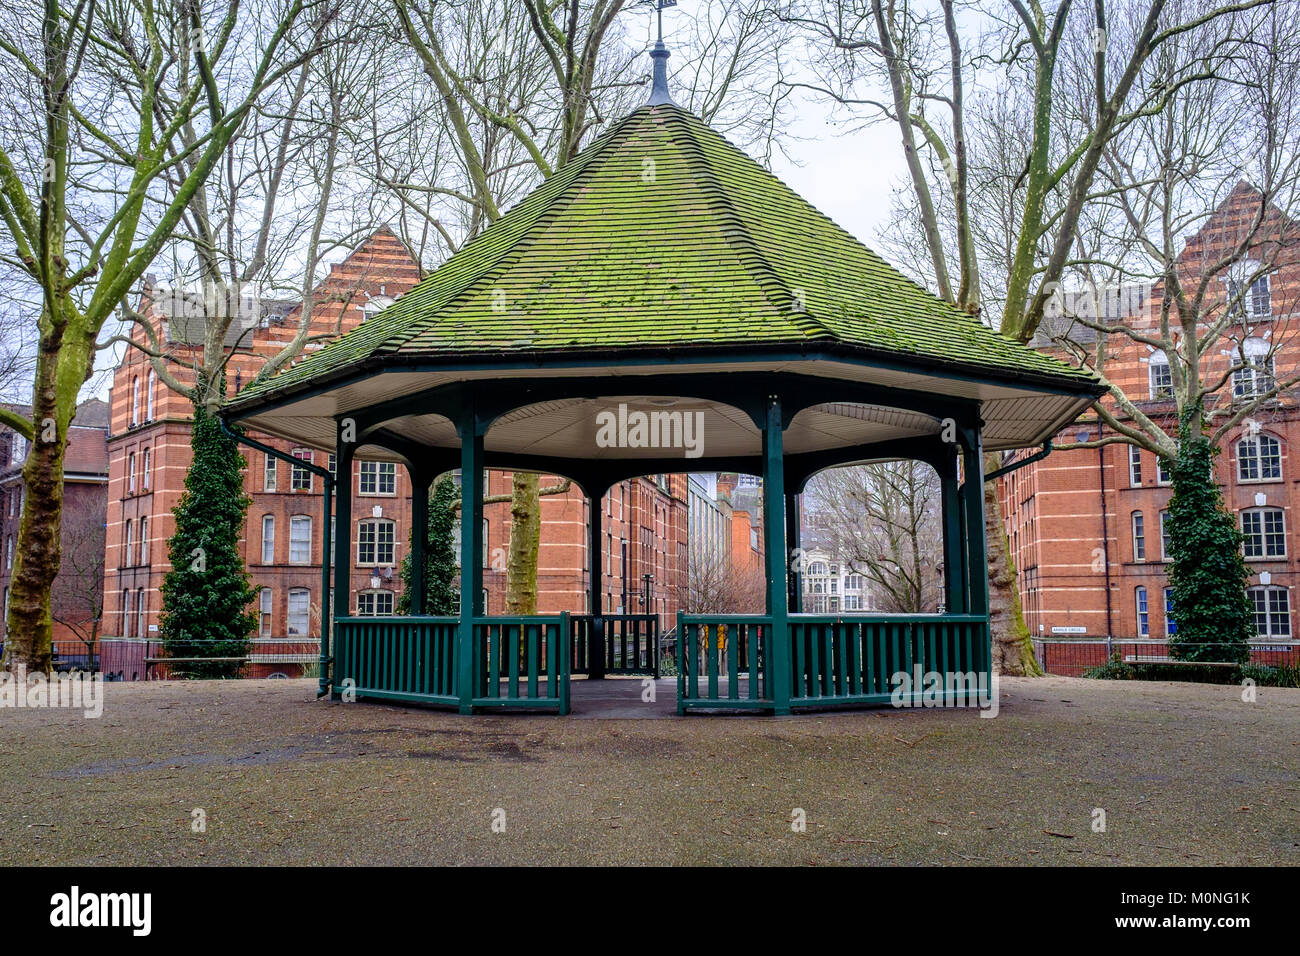 Bandstand at Arnold Circus, Boundary Estate, Bethnal Green, Tower Hamlets. - Stock Image